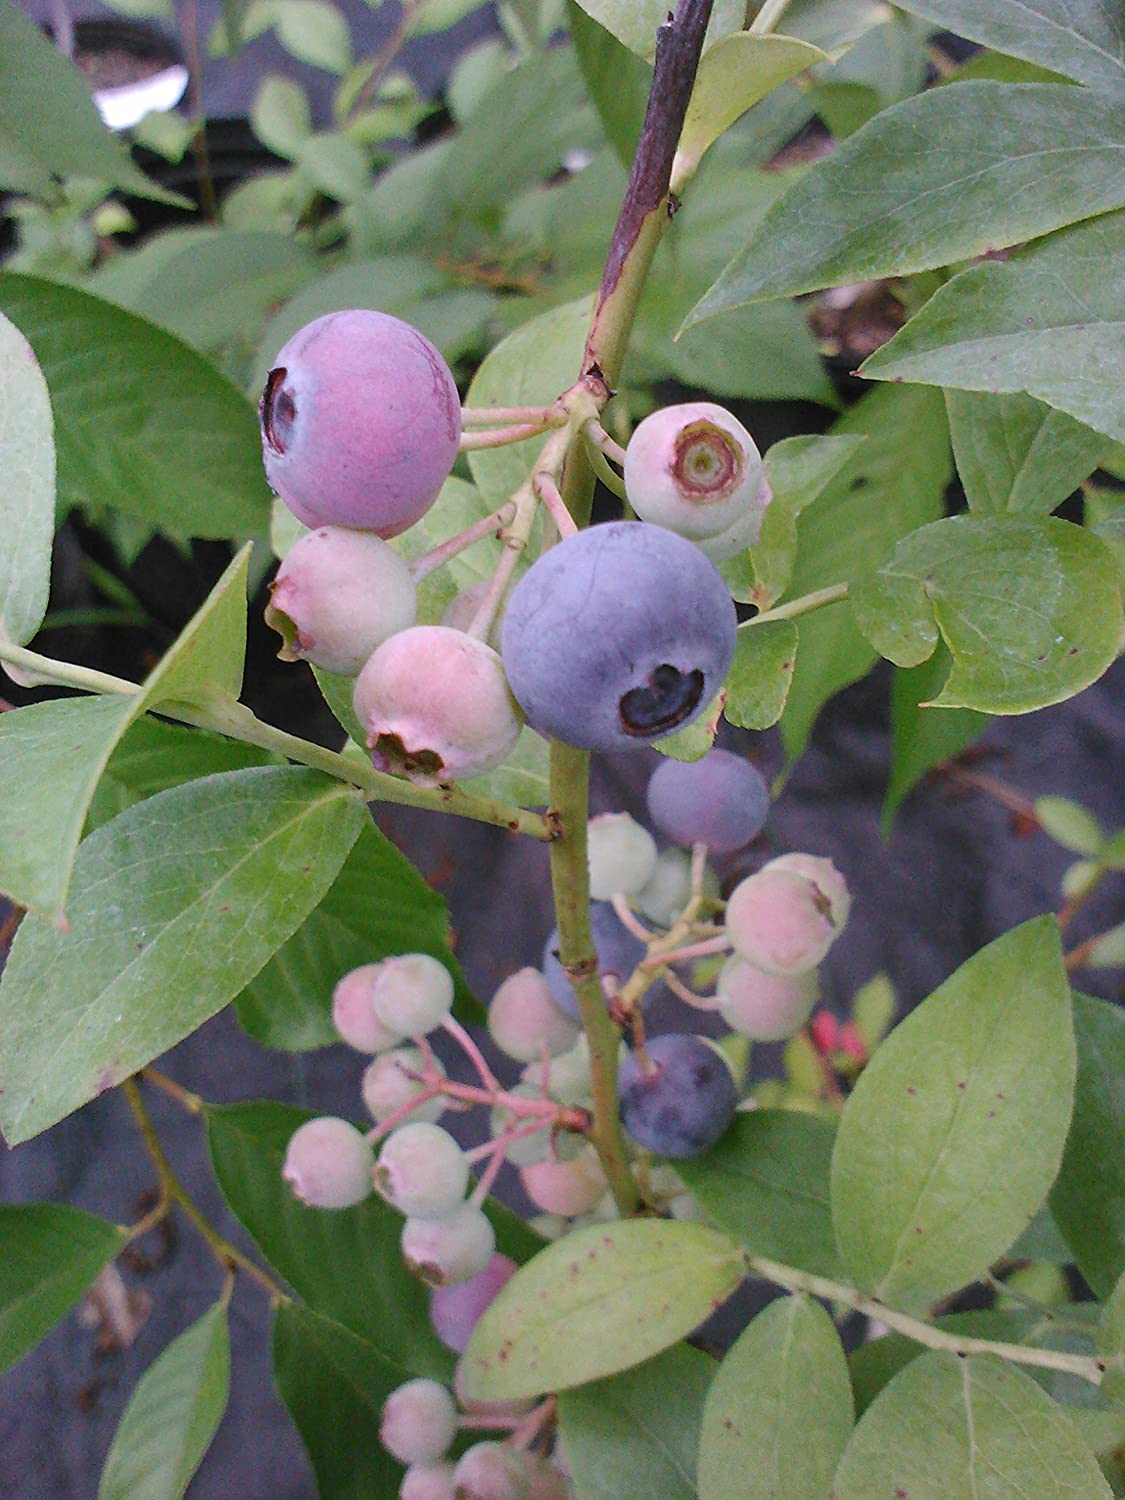 (1 Gallon) PREMIER Rabbiteye Blueberry Shrub- Good for Baking and Fresh Eating, supplier